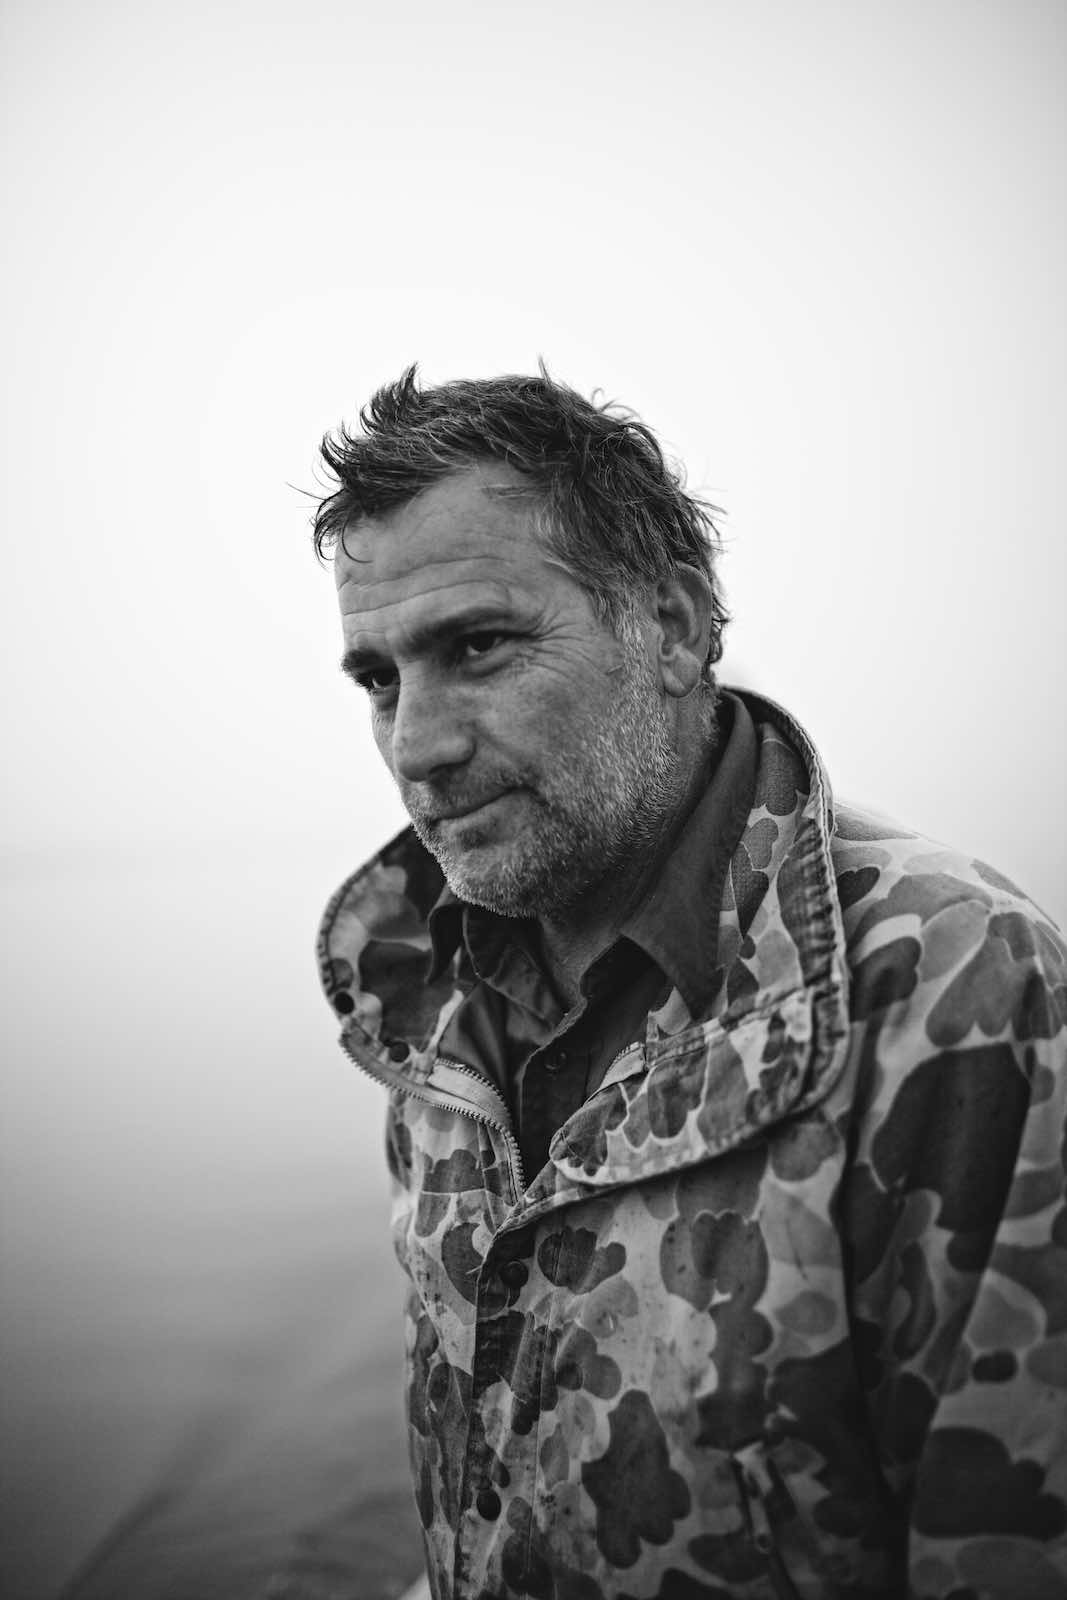 Fisherman shot in B&W during oyster harvest.